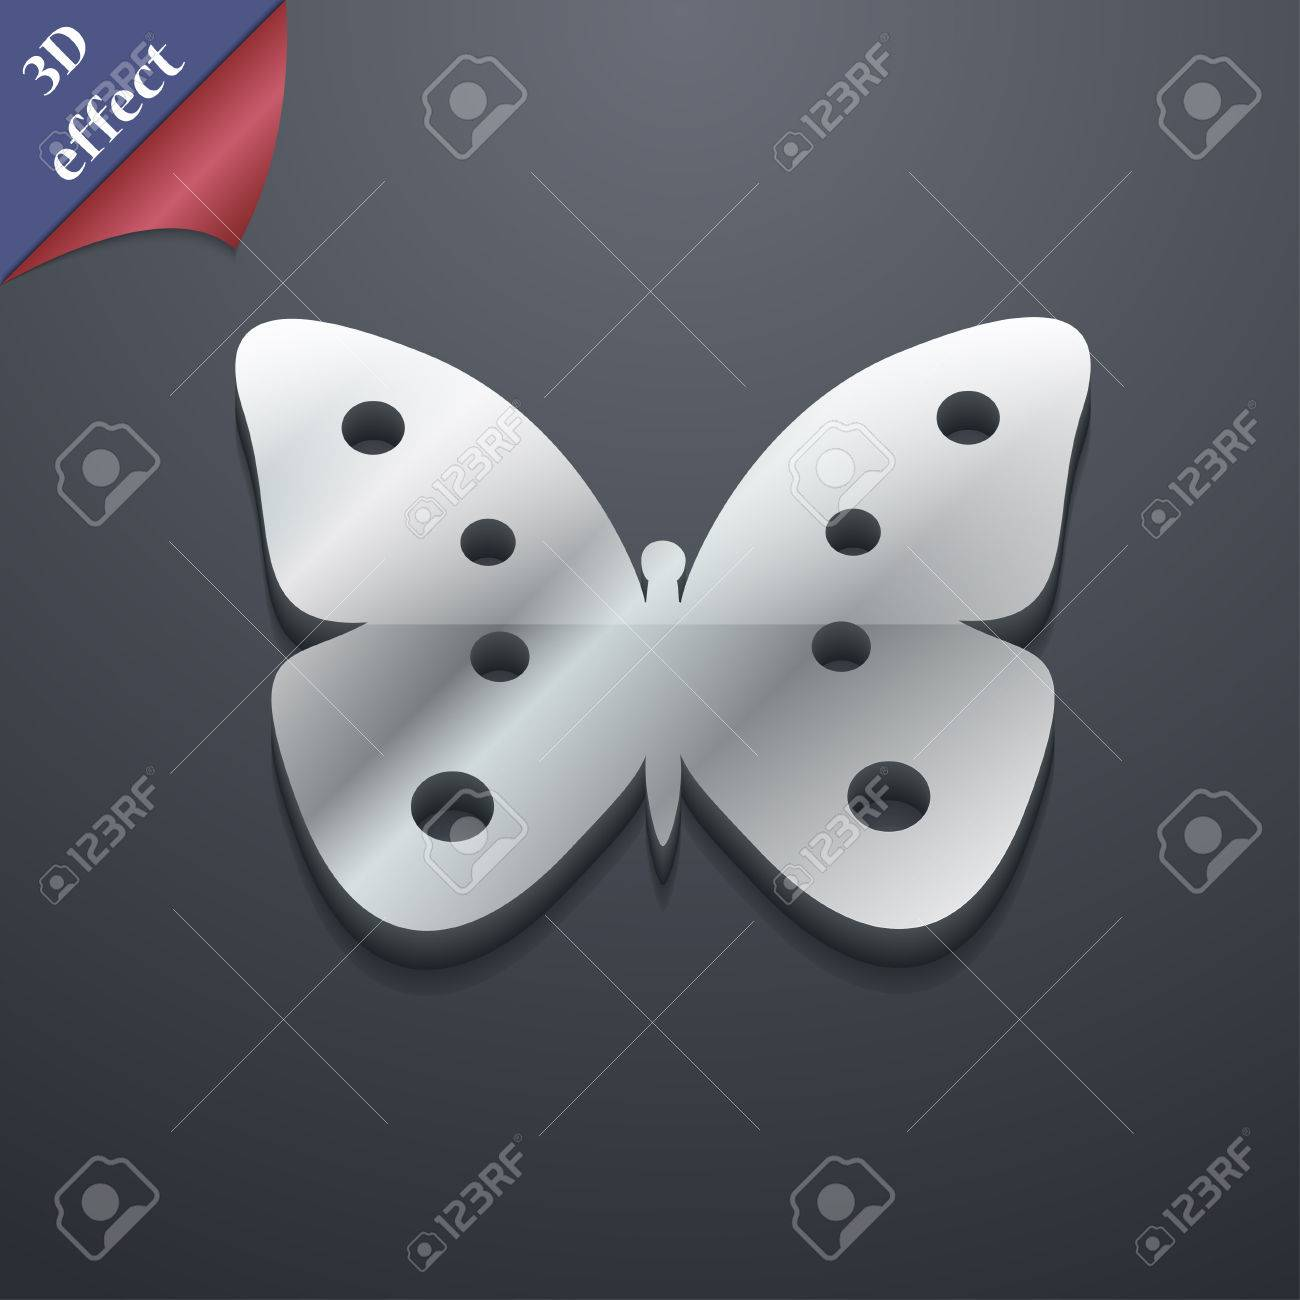 Butterfly icon symbol 3d style trendy modern design with space butterfly icon symbol 3d style trendy modern design with space for your text biocorpaavc Image collections